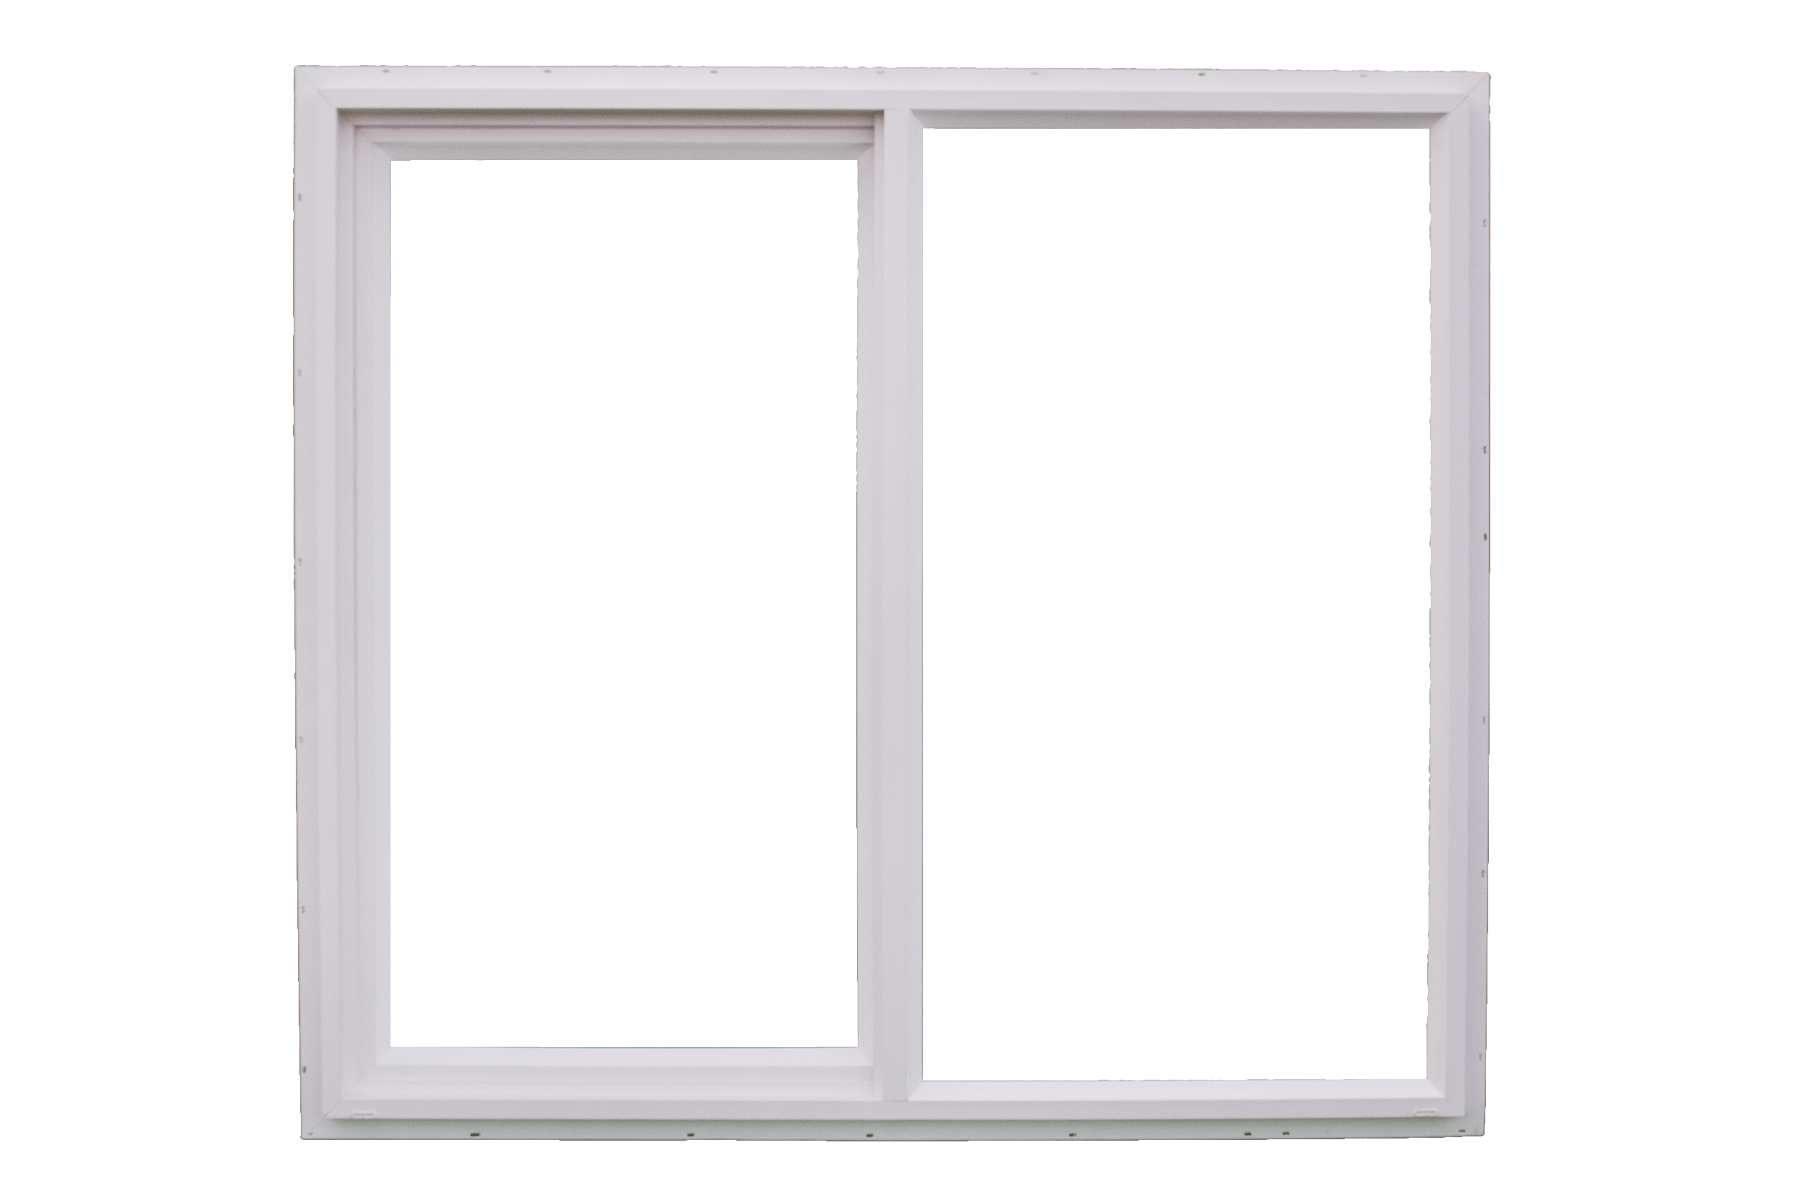 White Window Transparent Png Stickpng